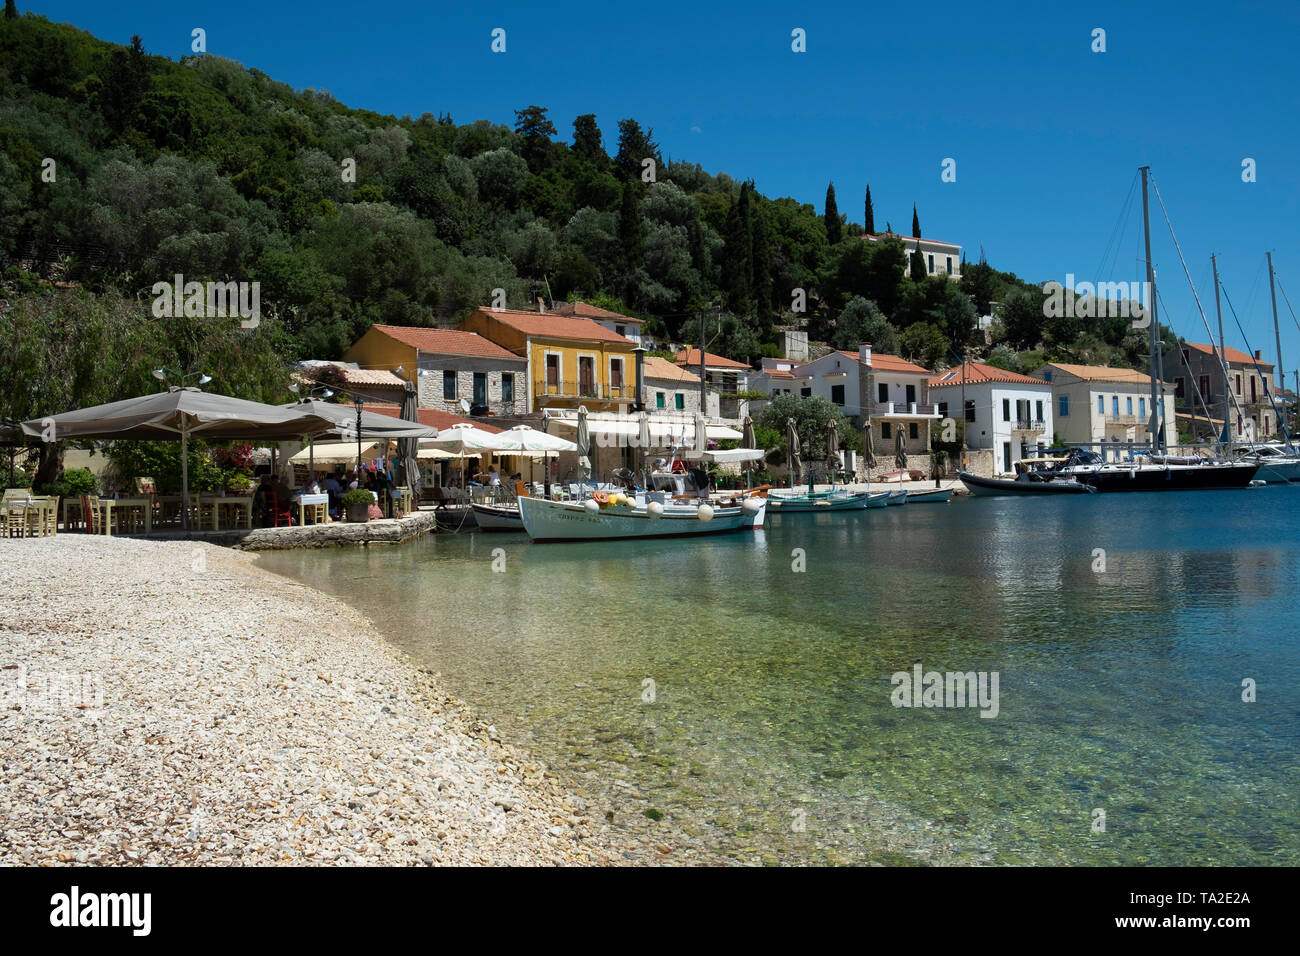 Boats and yachts in the bay at Kioni, Ithaca, Greece. Ithaca, Ithaki or Ithaka is a Greek island located in the Ionian Sea to the west of continental Greece. Ithacas main island has an area of 96 square kilometres. It is the second-smallest of seven main Ionian Islands. - Stock Image